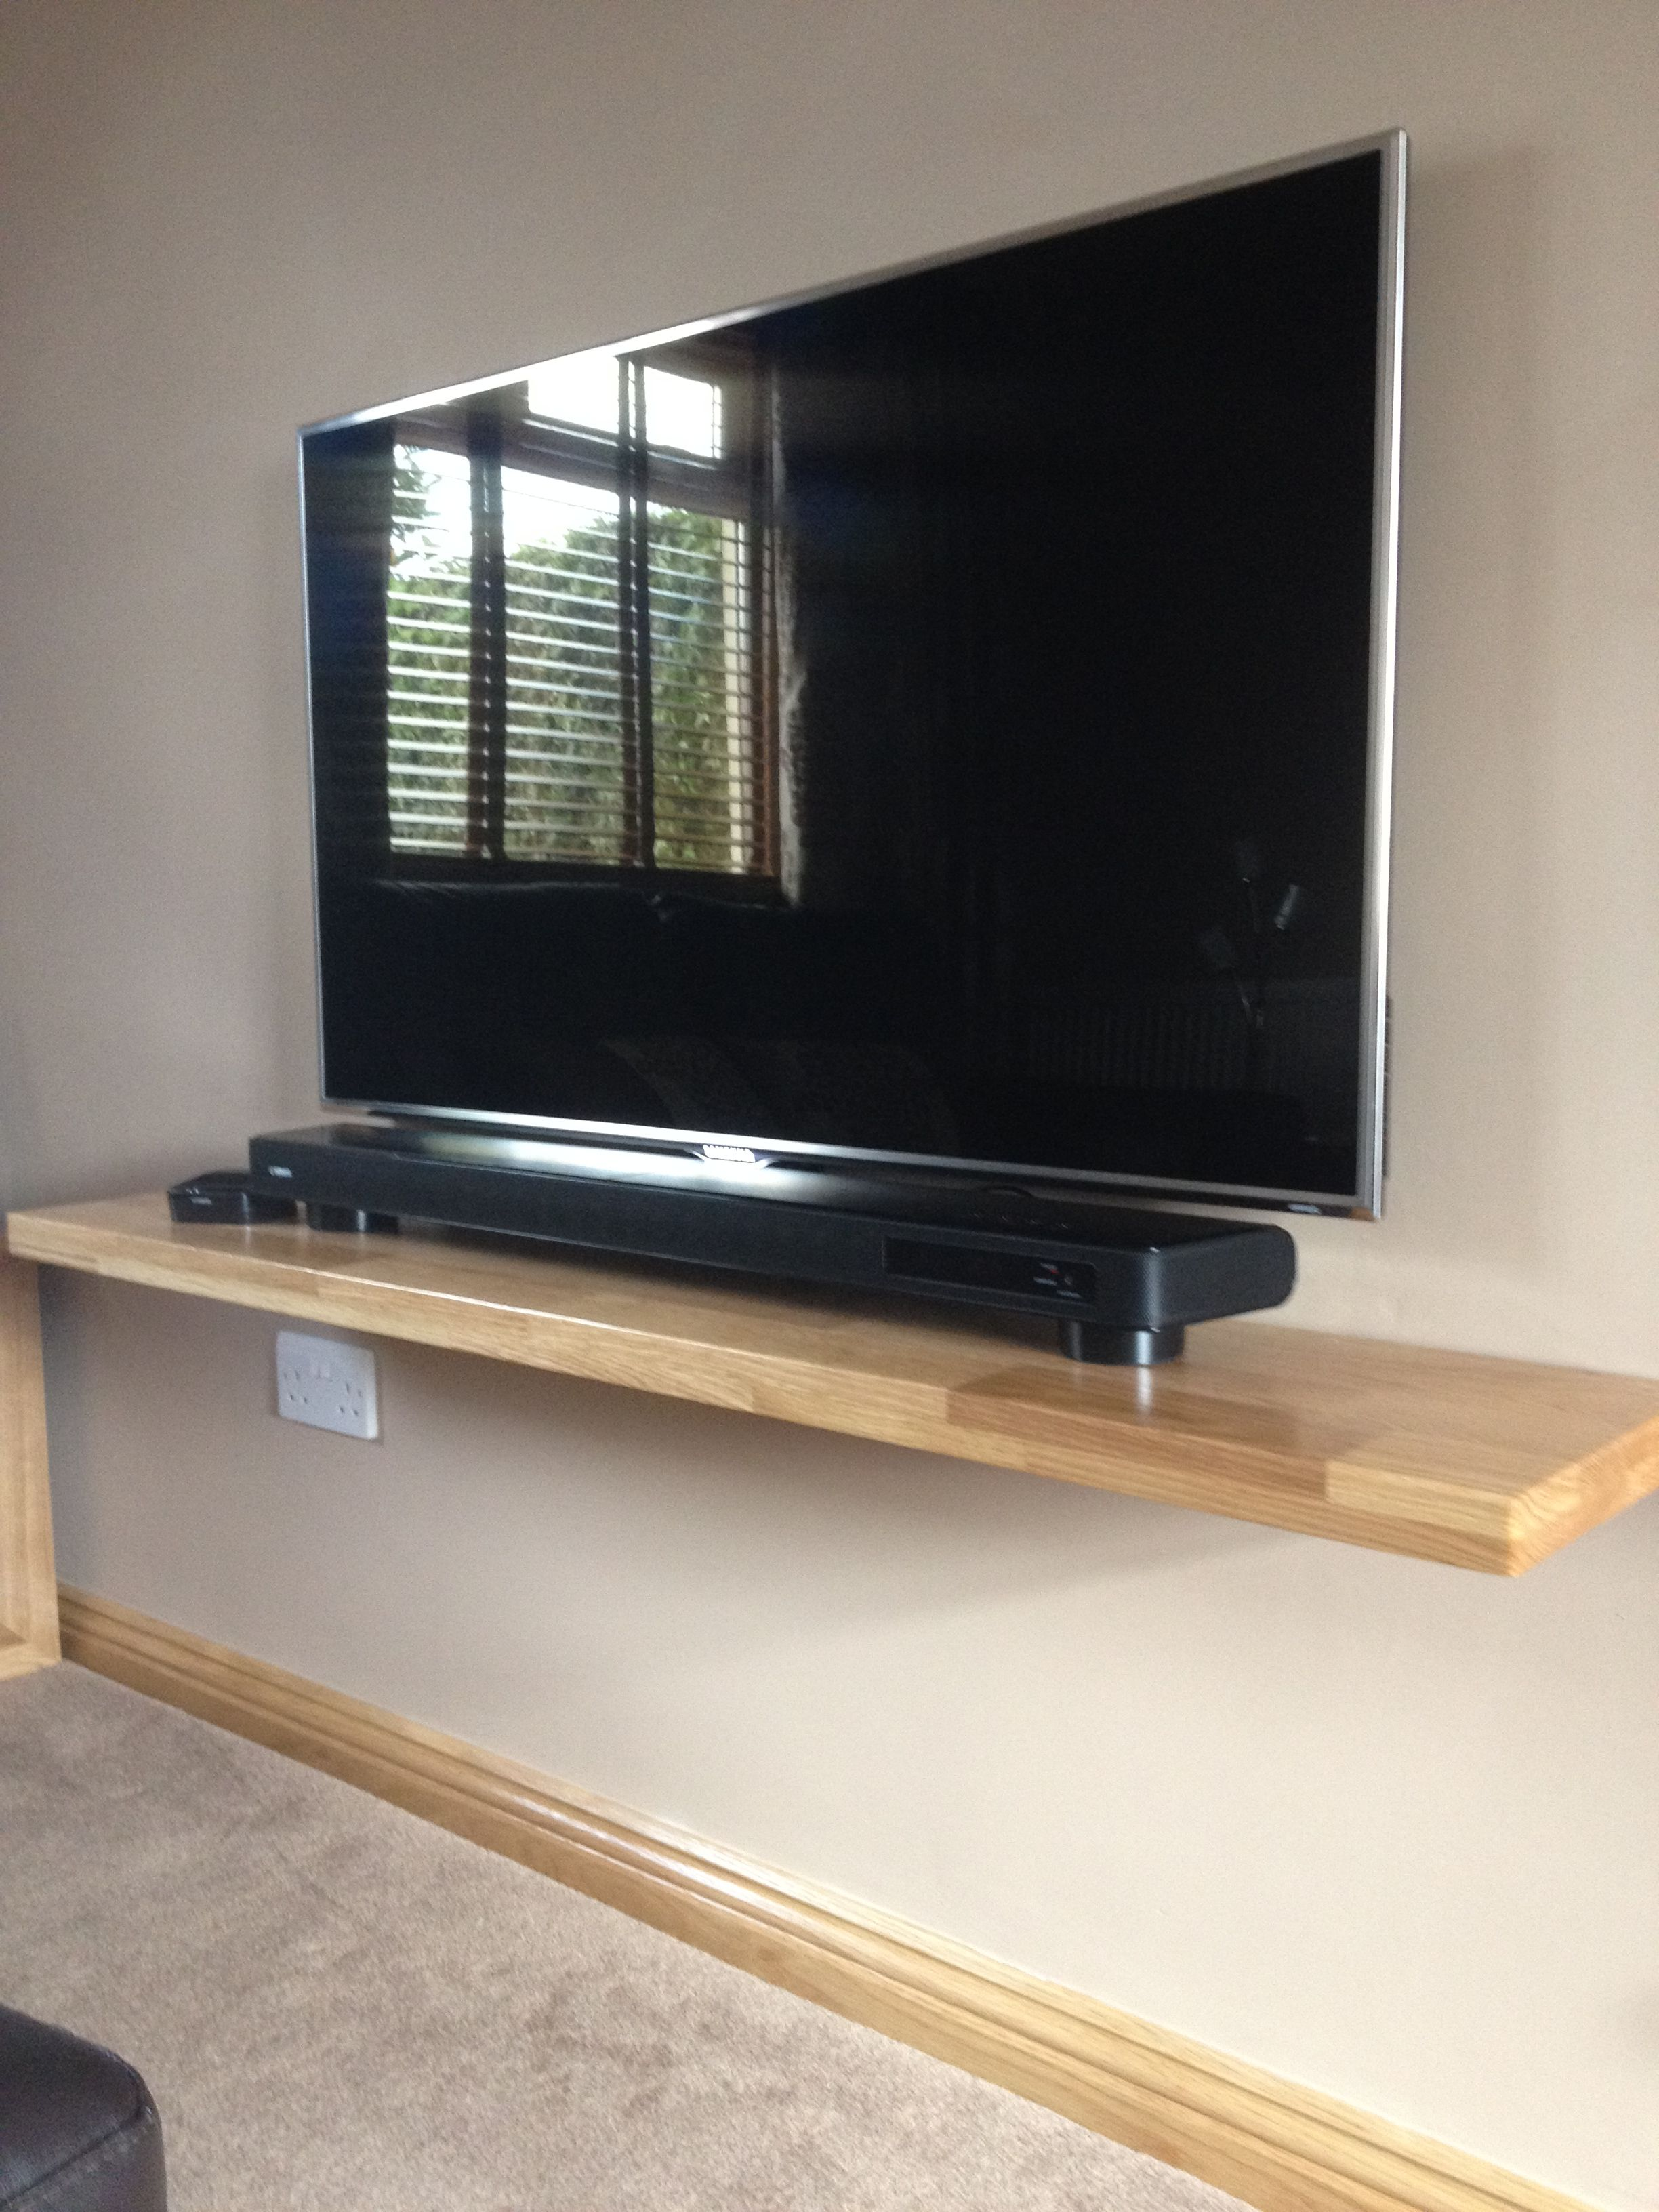 One Of Ours Solid Oak Floating Shelves Used To Support A